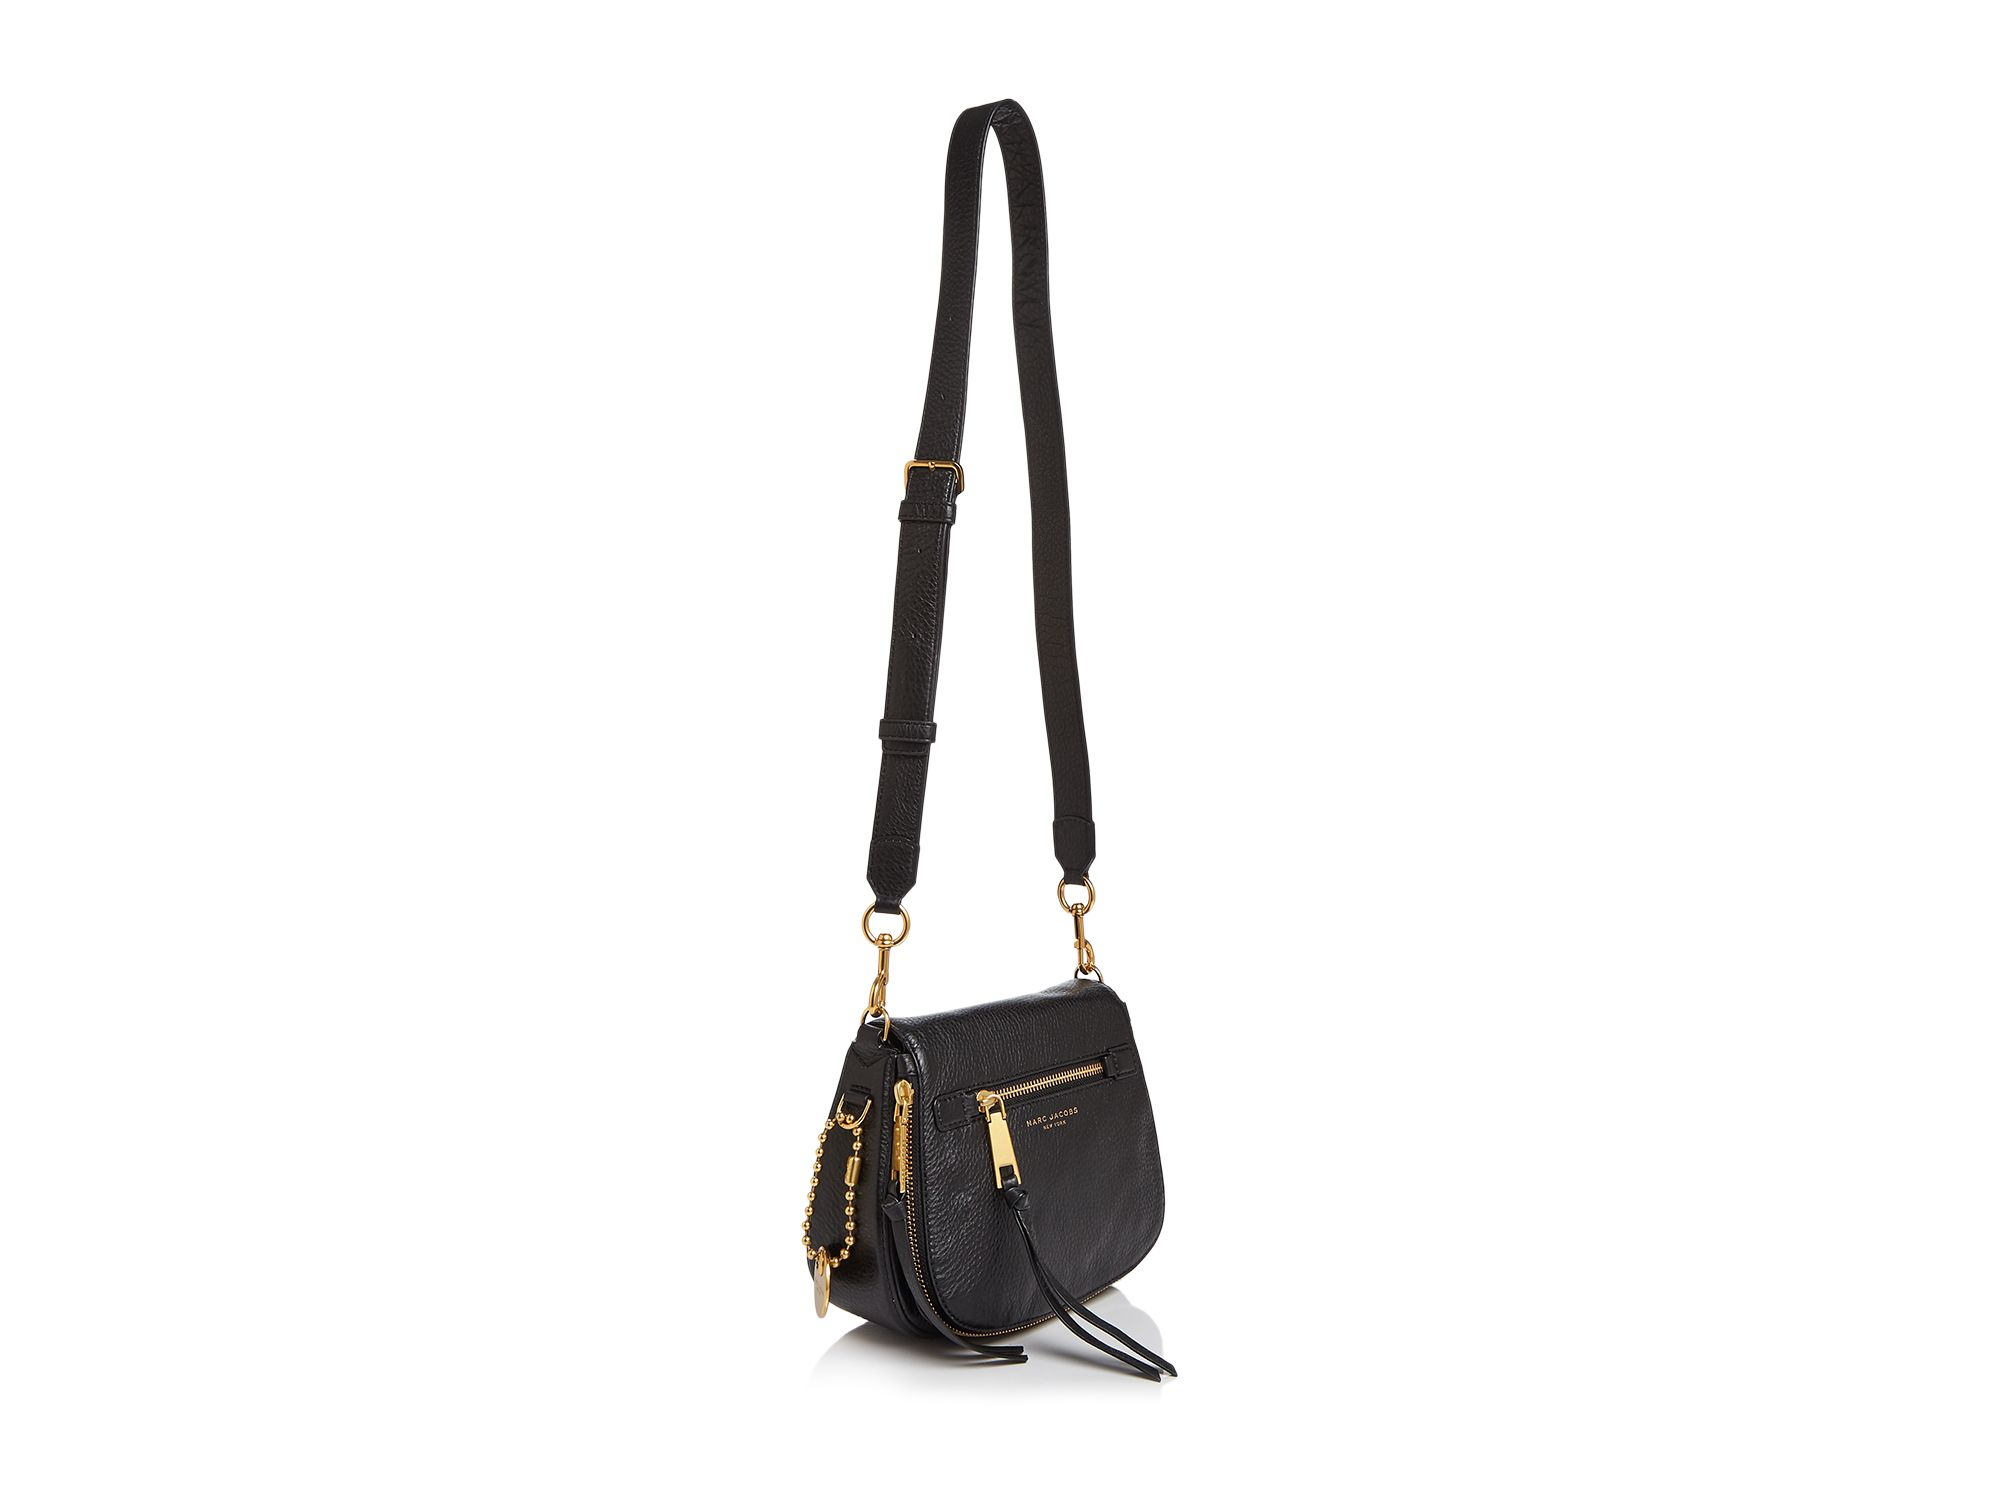 b1ac728b1 Marc Jacobs Recruit Small Saddle Bag in Black - Lyst